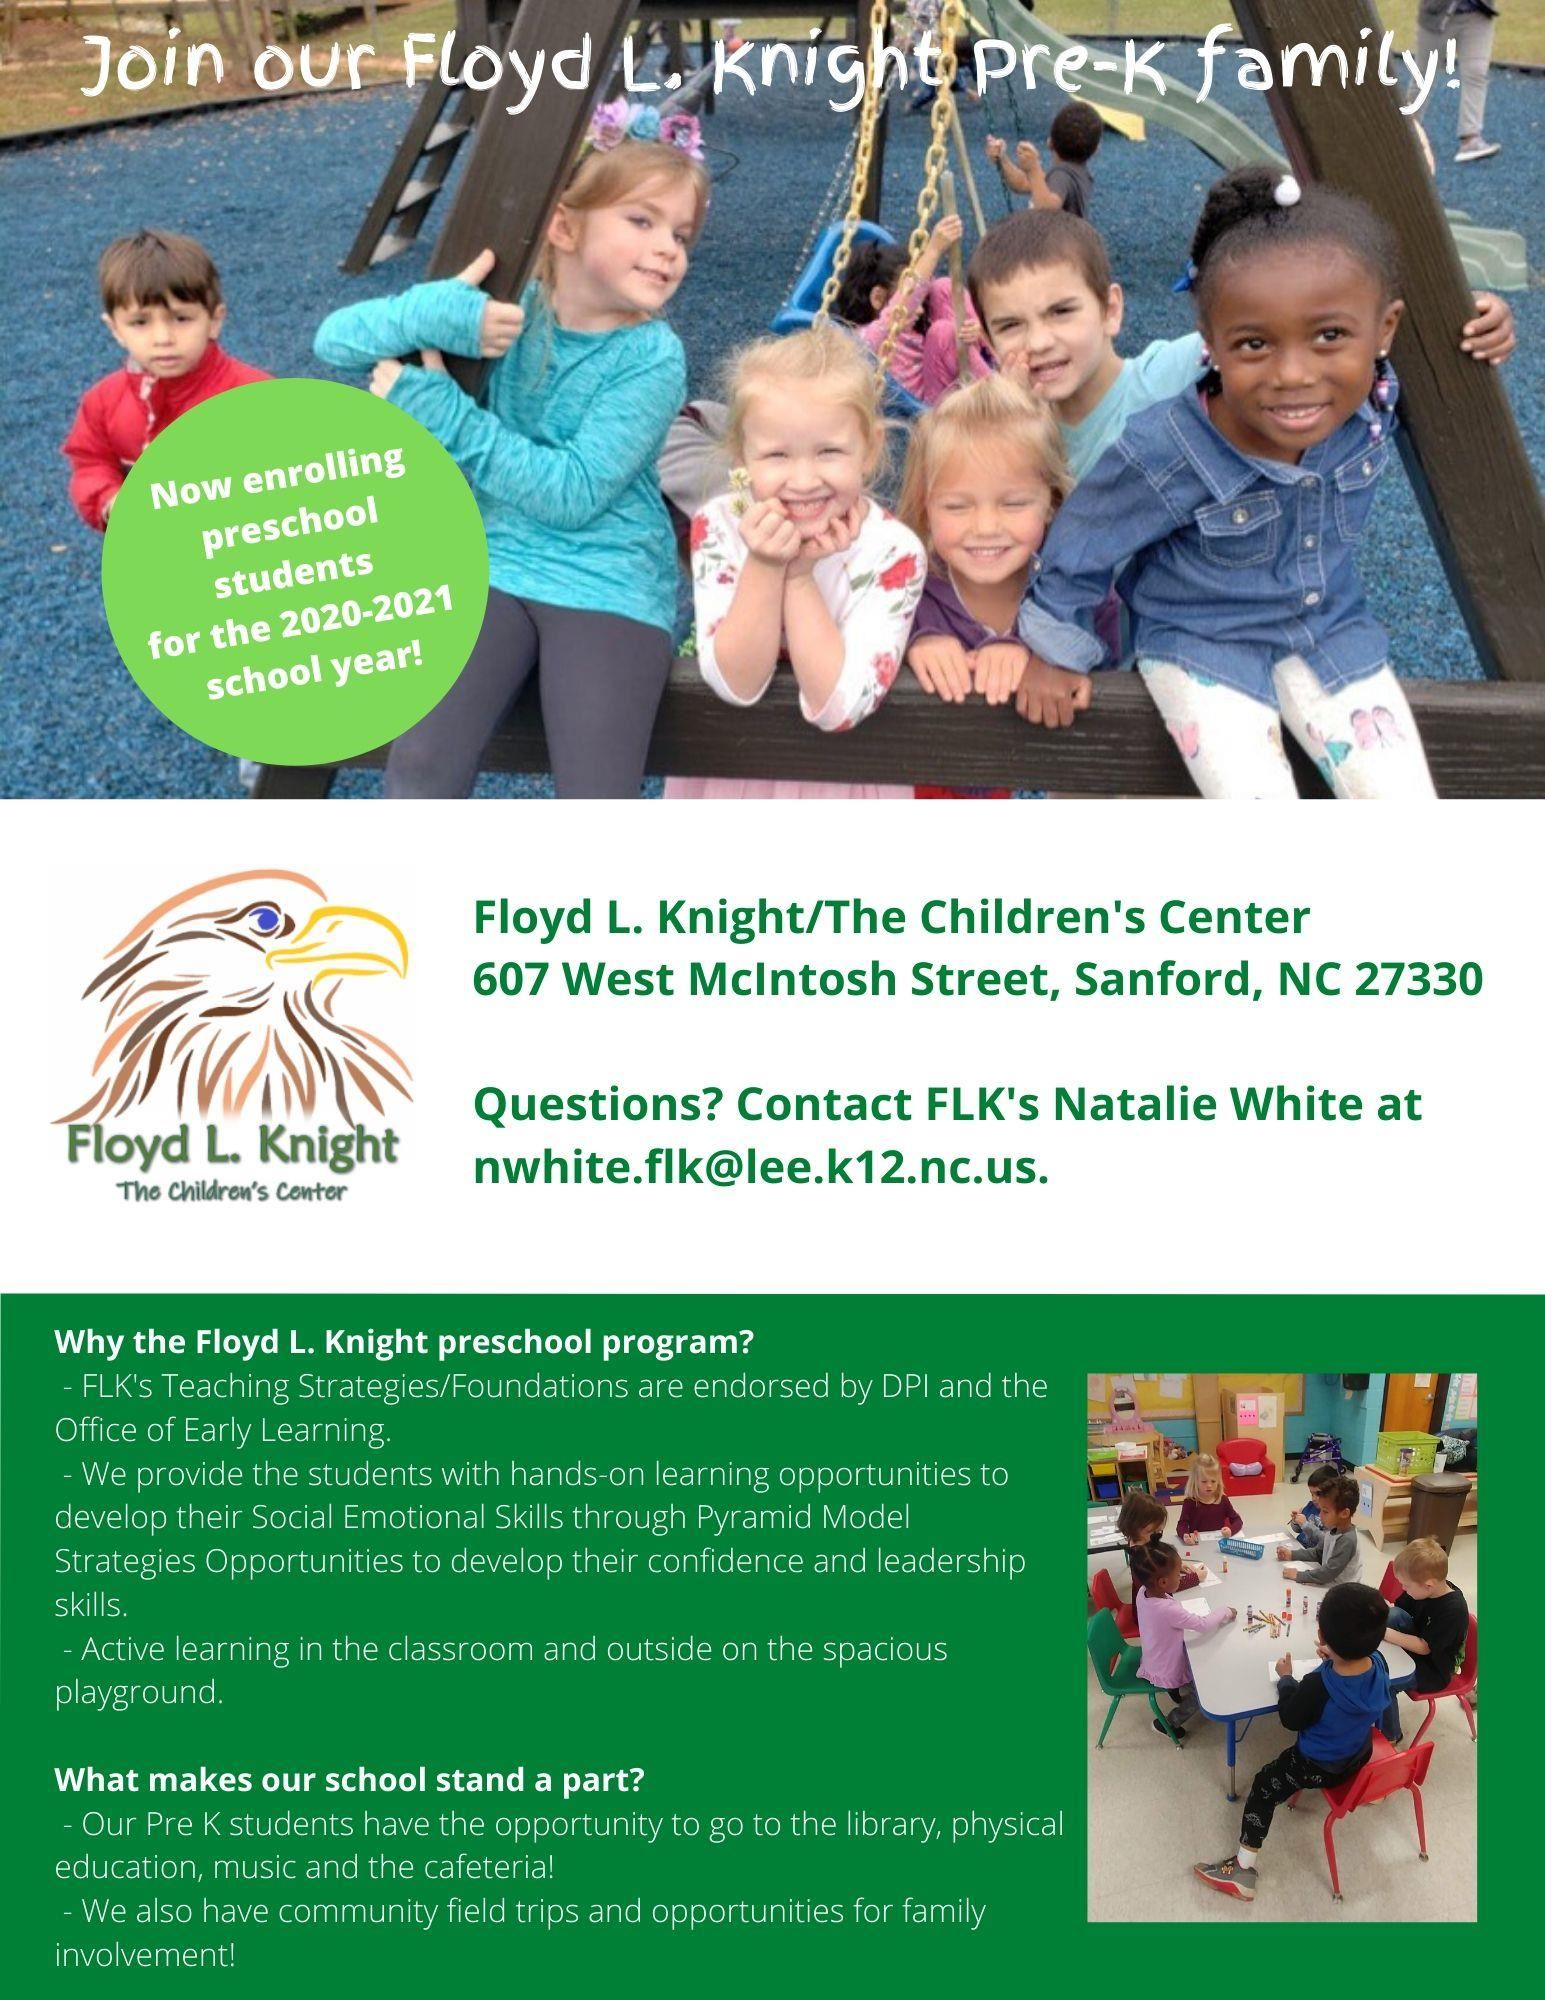 Floyd L. Knight/The Children's Center 2020/21 Preschool Openings